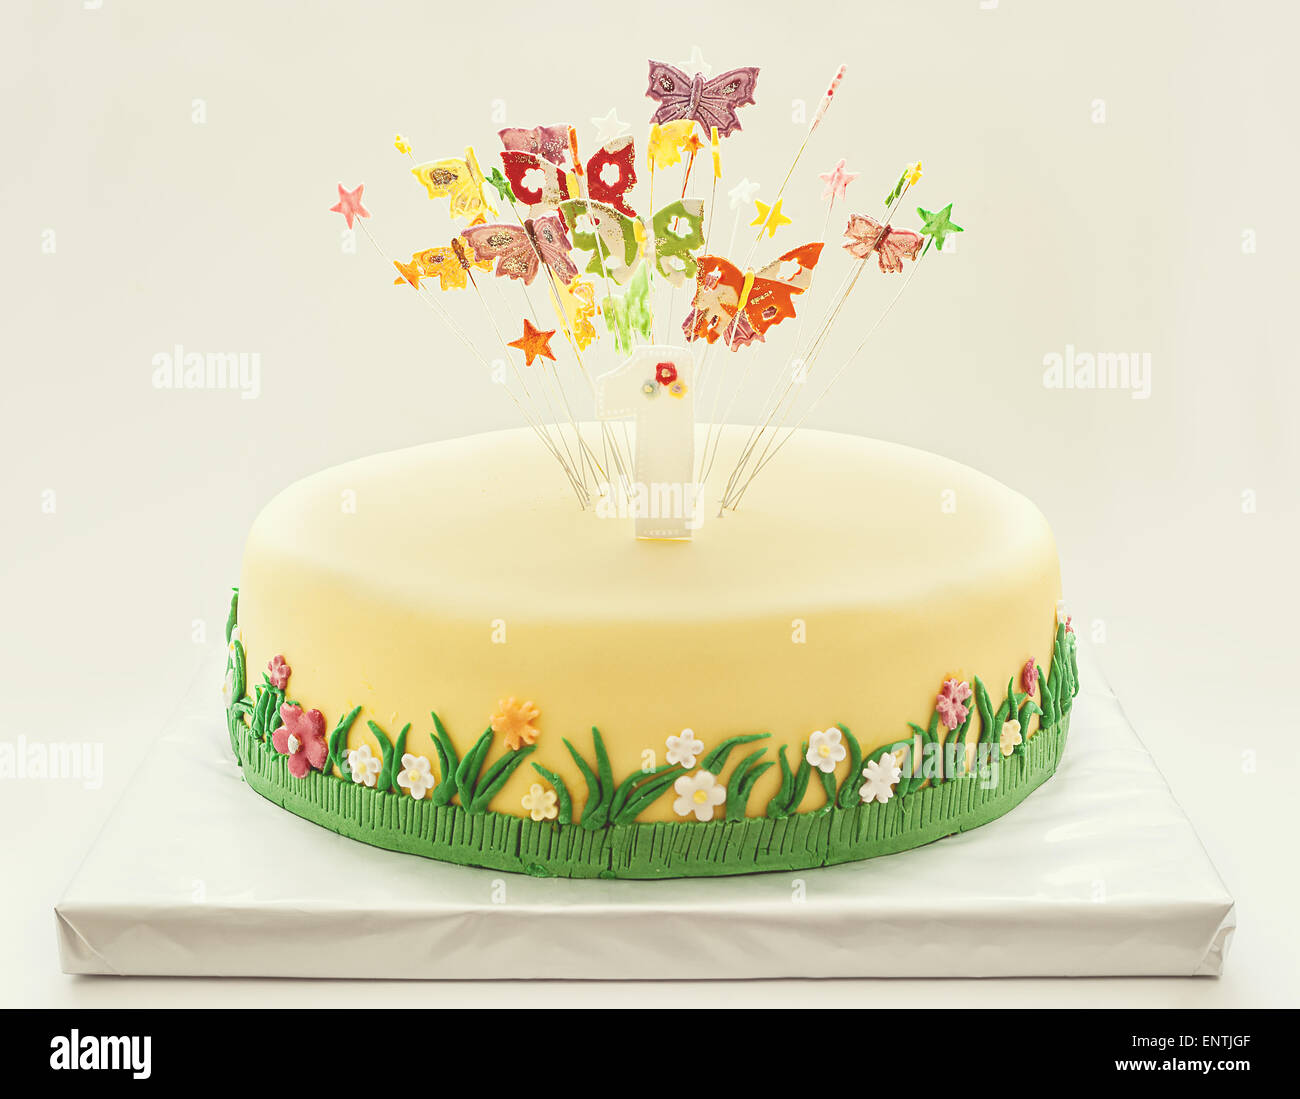 Butterfly Cake Stock Photos & Butterfly Cake Stock Images - Alamy